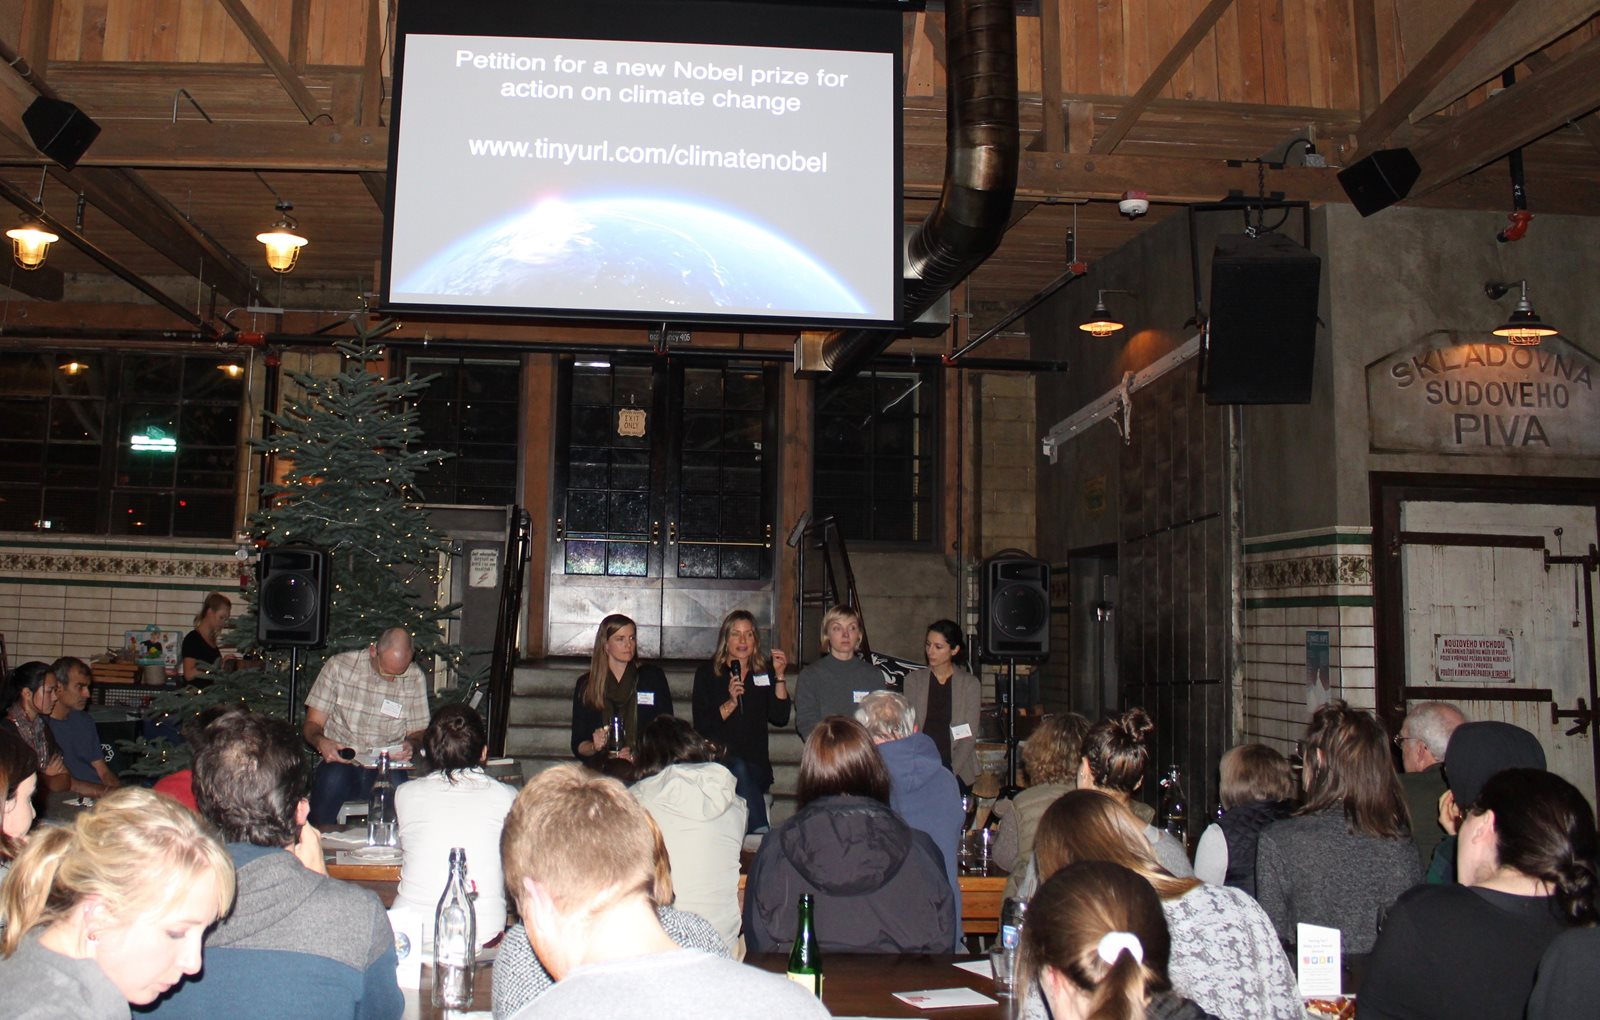 Climate Science on Tap event showing panel